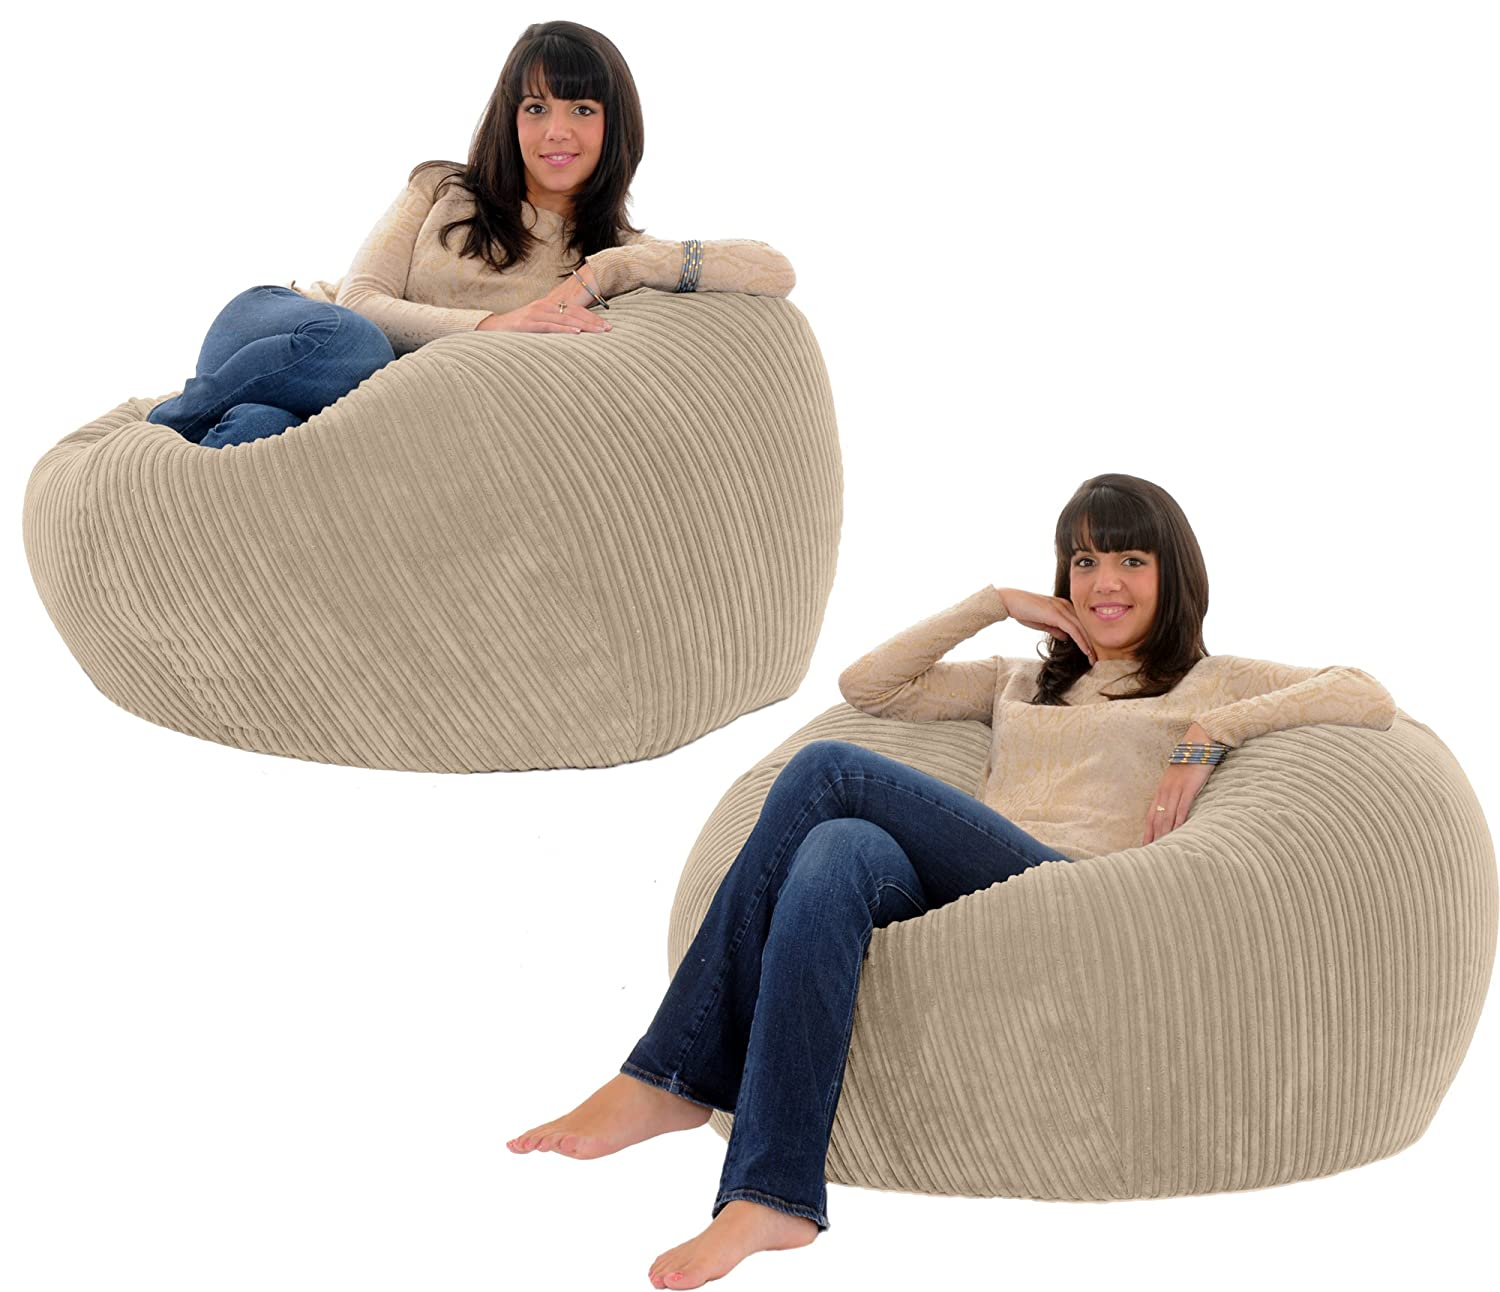 JUMBO CORD MONSTER BEANBAG Chair Giant Big Bean Adult Bag Bags